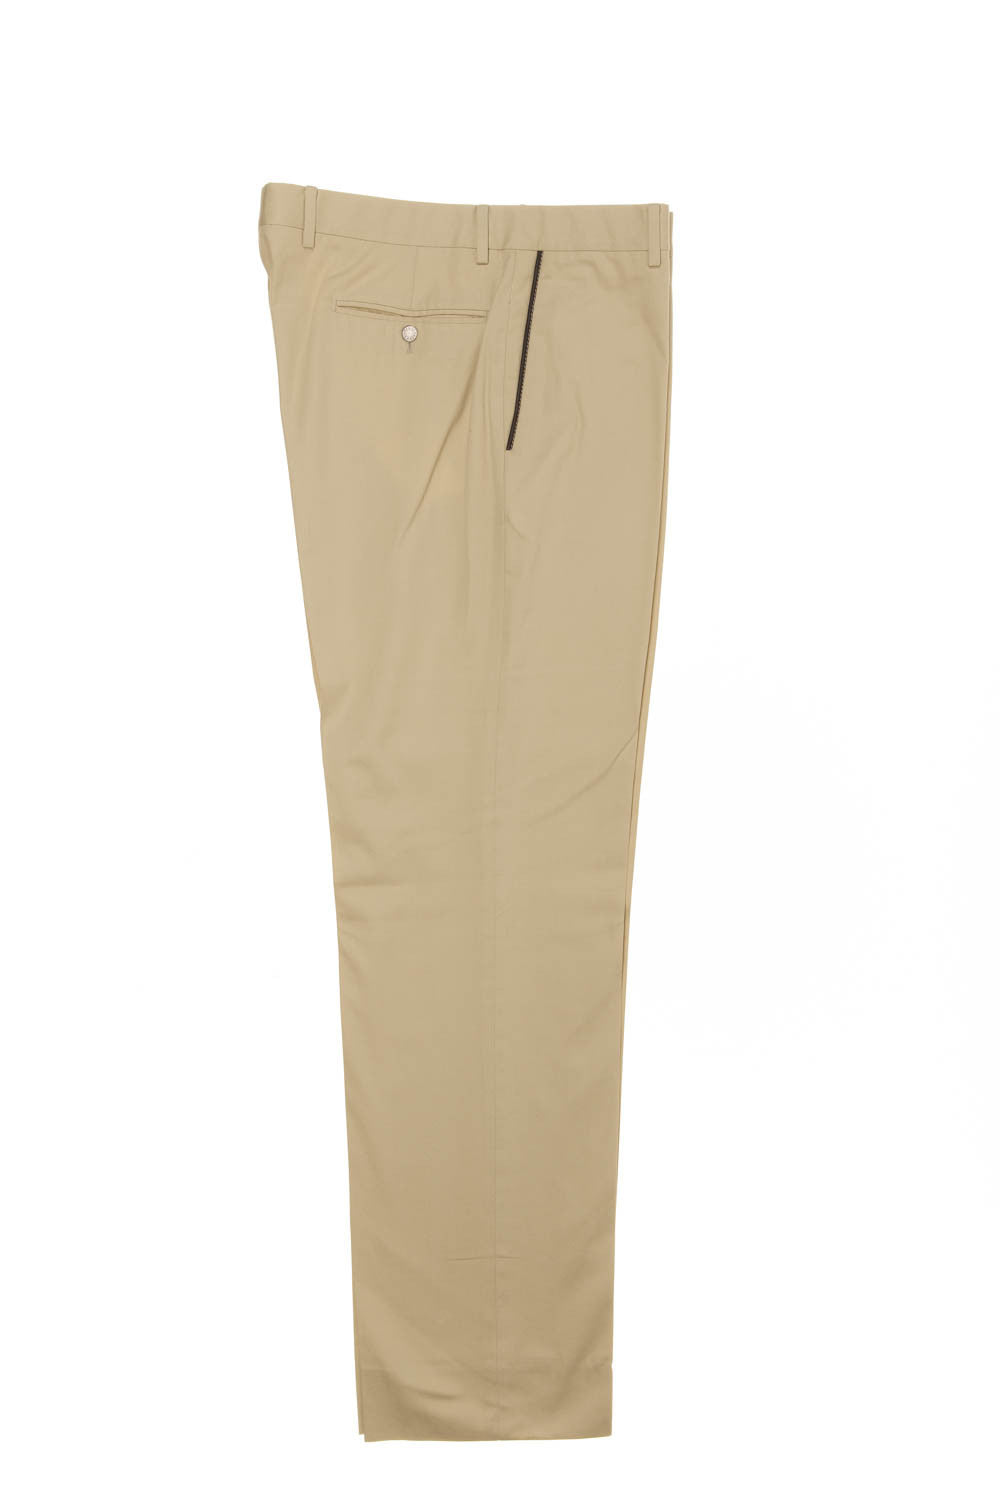 Hermes - Khaki Colored Dress Pants - IT 42